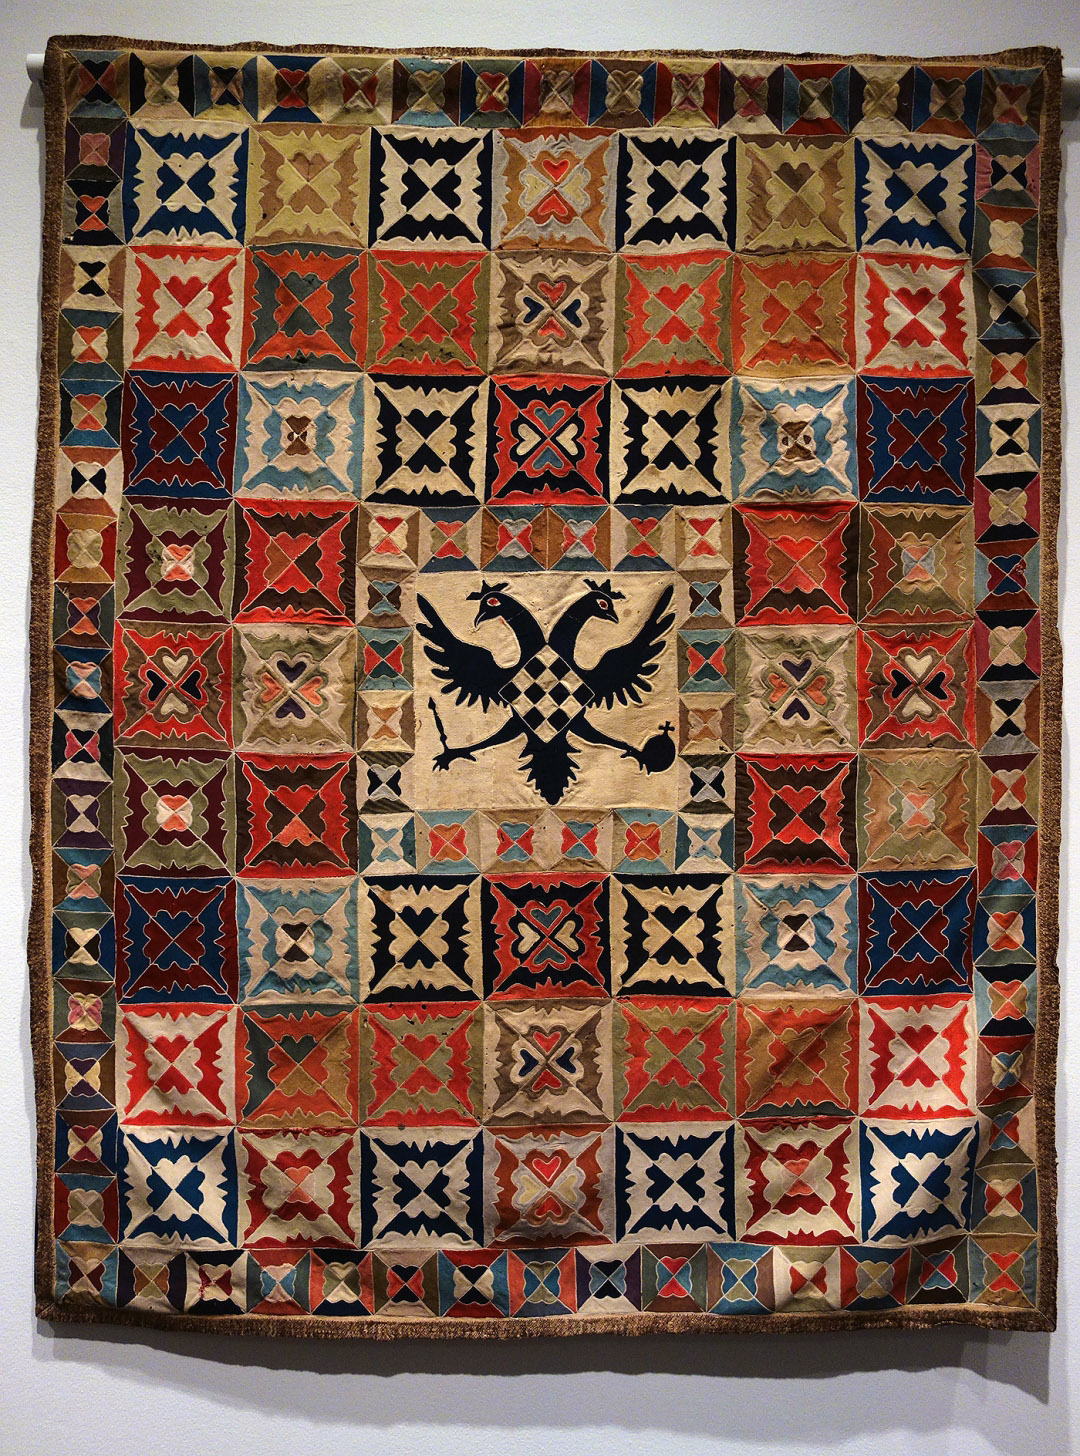 The Quilts of War